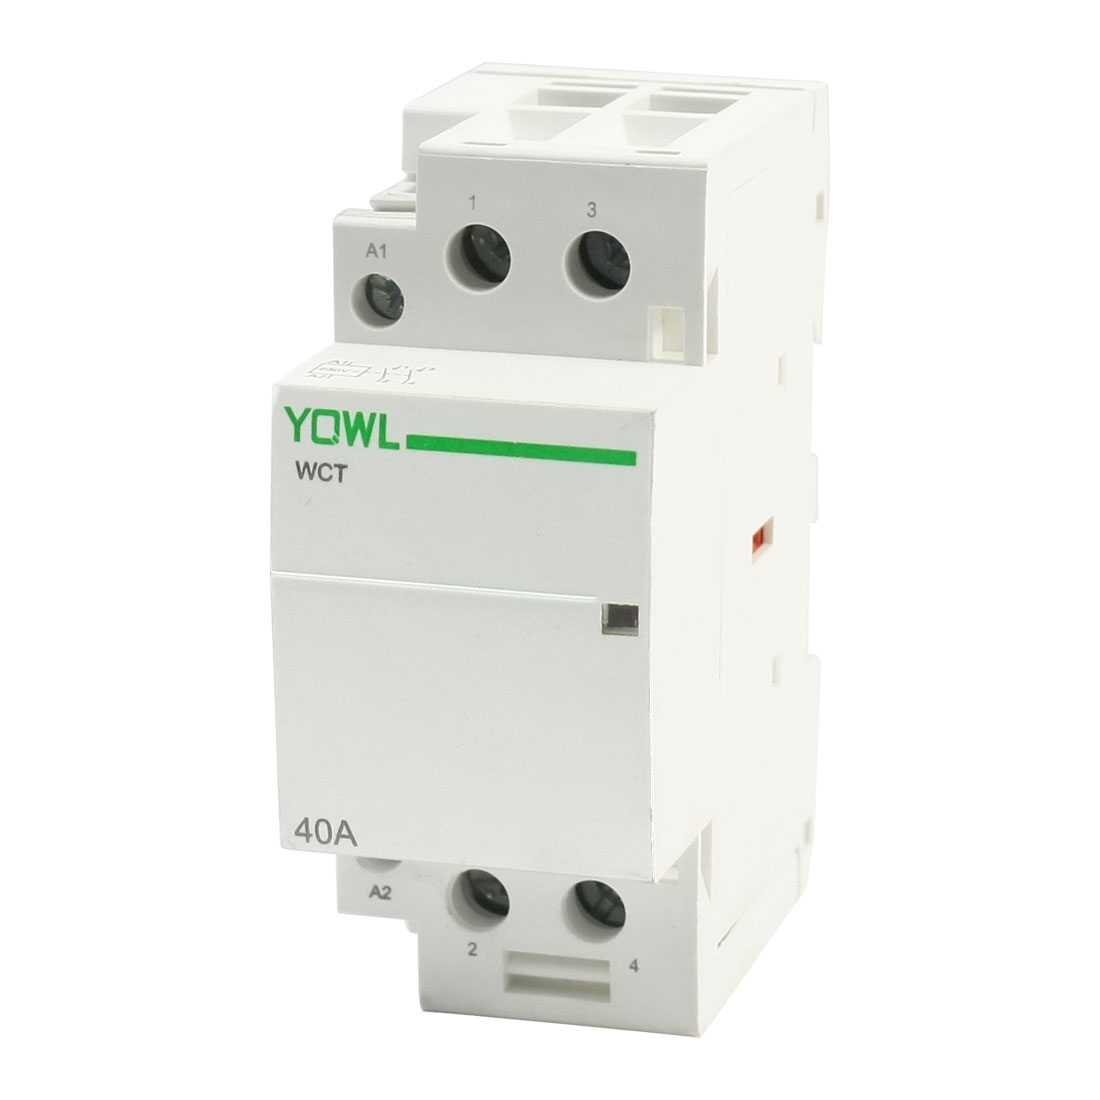 WCT-40A AC220-240V Coil 2P Dual Poles 35mm DIN Rail Mounting Universal Purpose Household Contactor Famliy Modular 40AMP